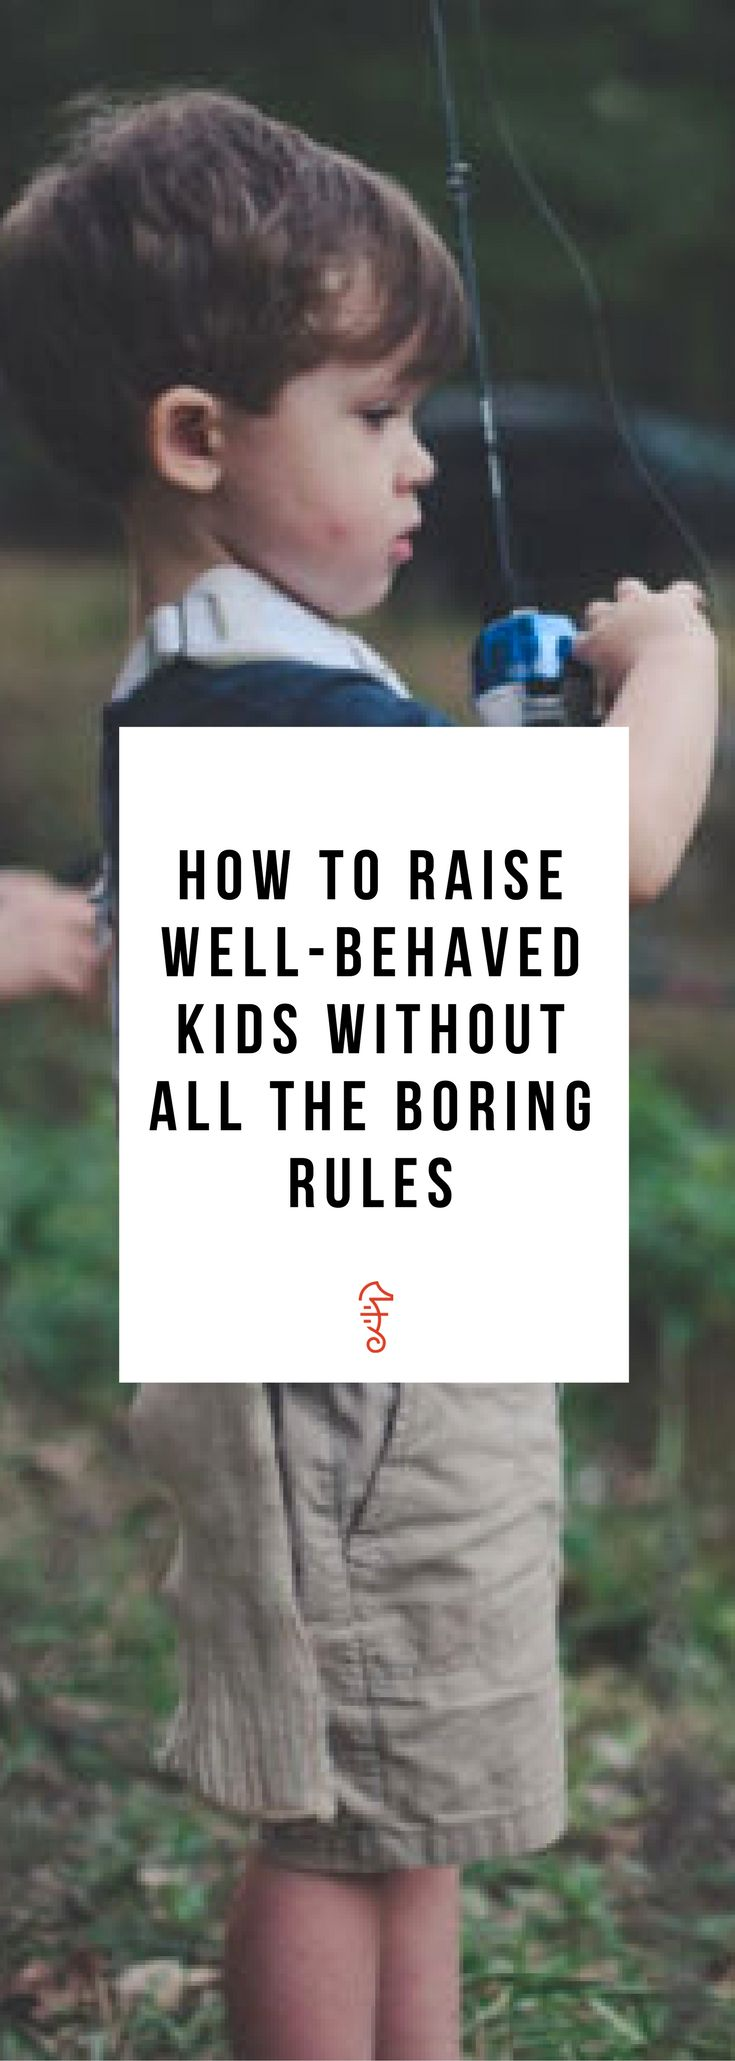 parenting tips, parenting hacks, rules for kids, household rules for kids, well behaved kids, well behaved kids parenting tips